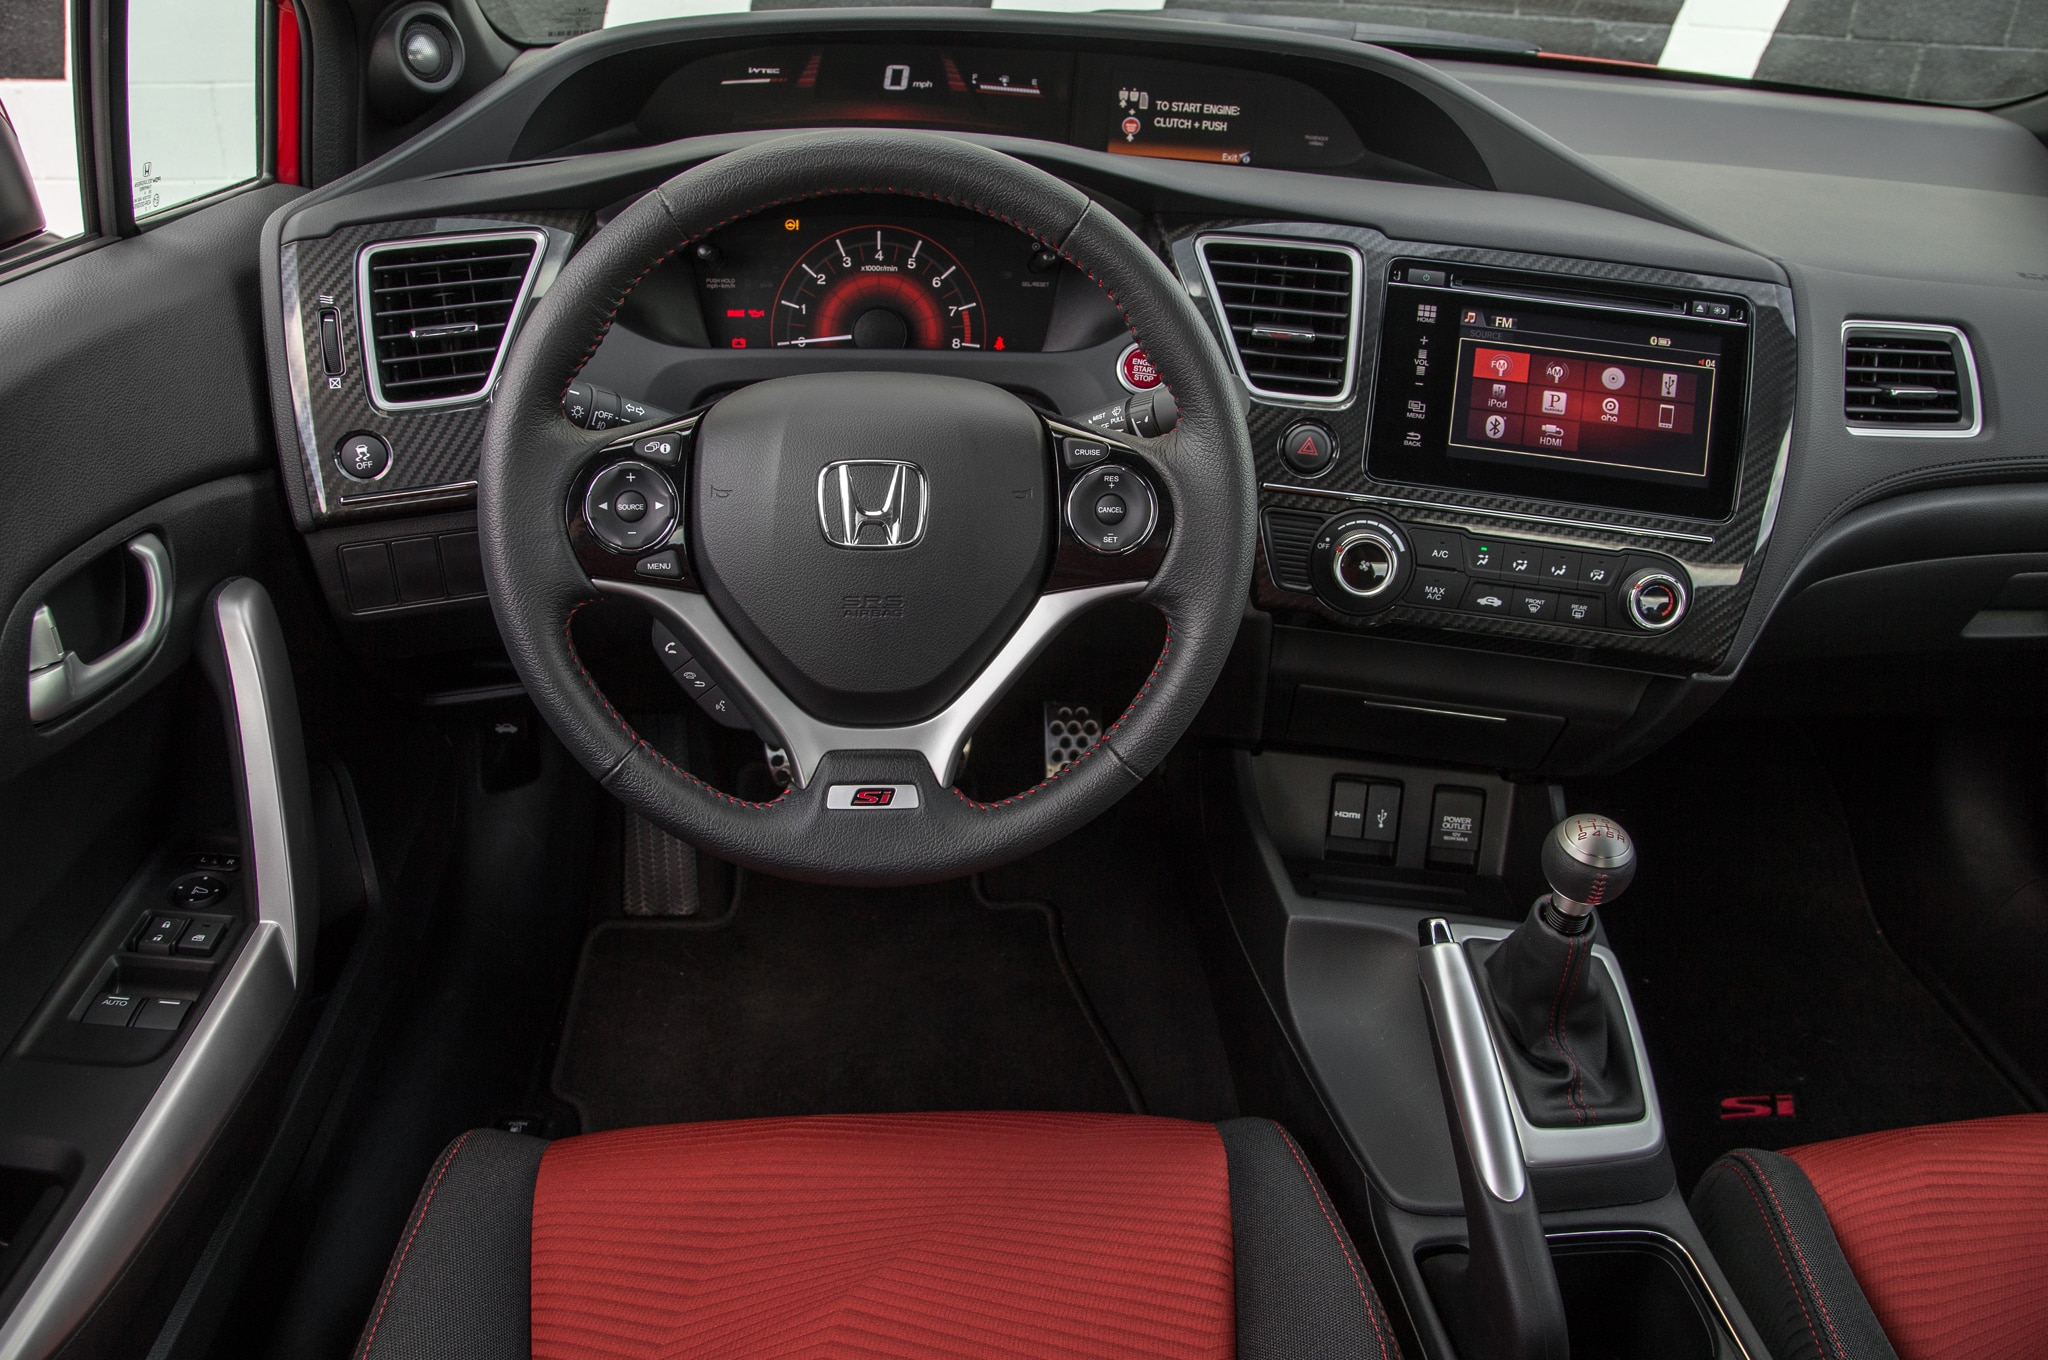 2014 honda civic si from forza video games brought to life - 2016 honda civic si coupe interior ...